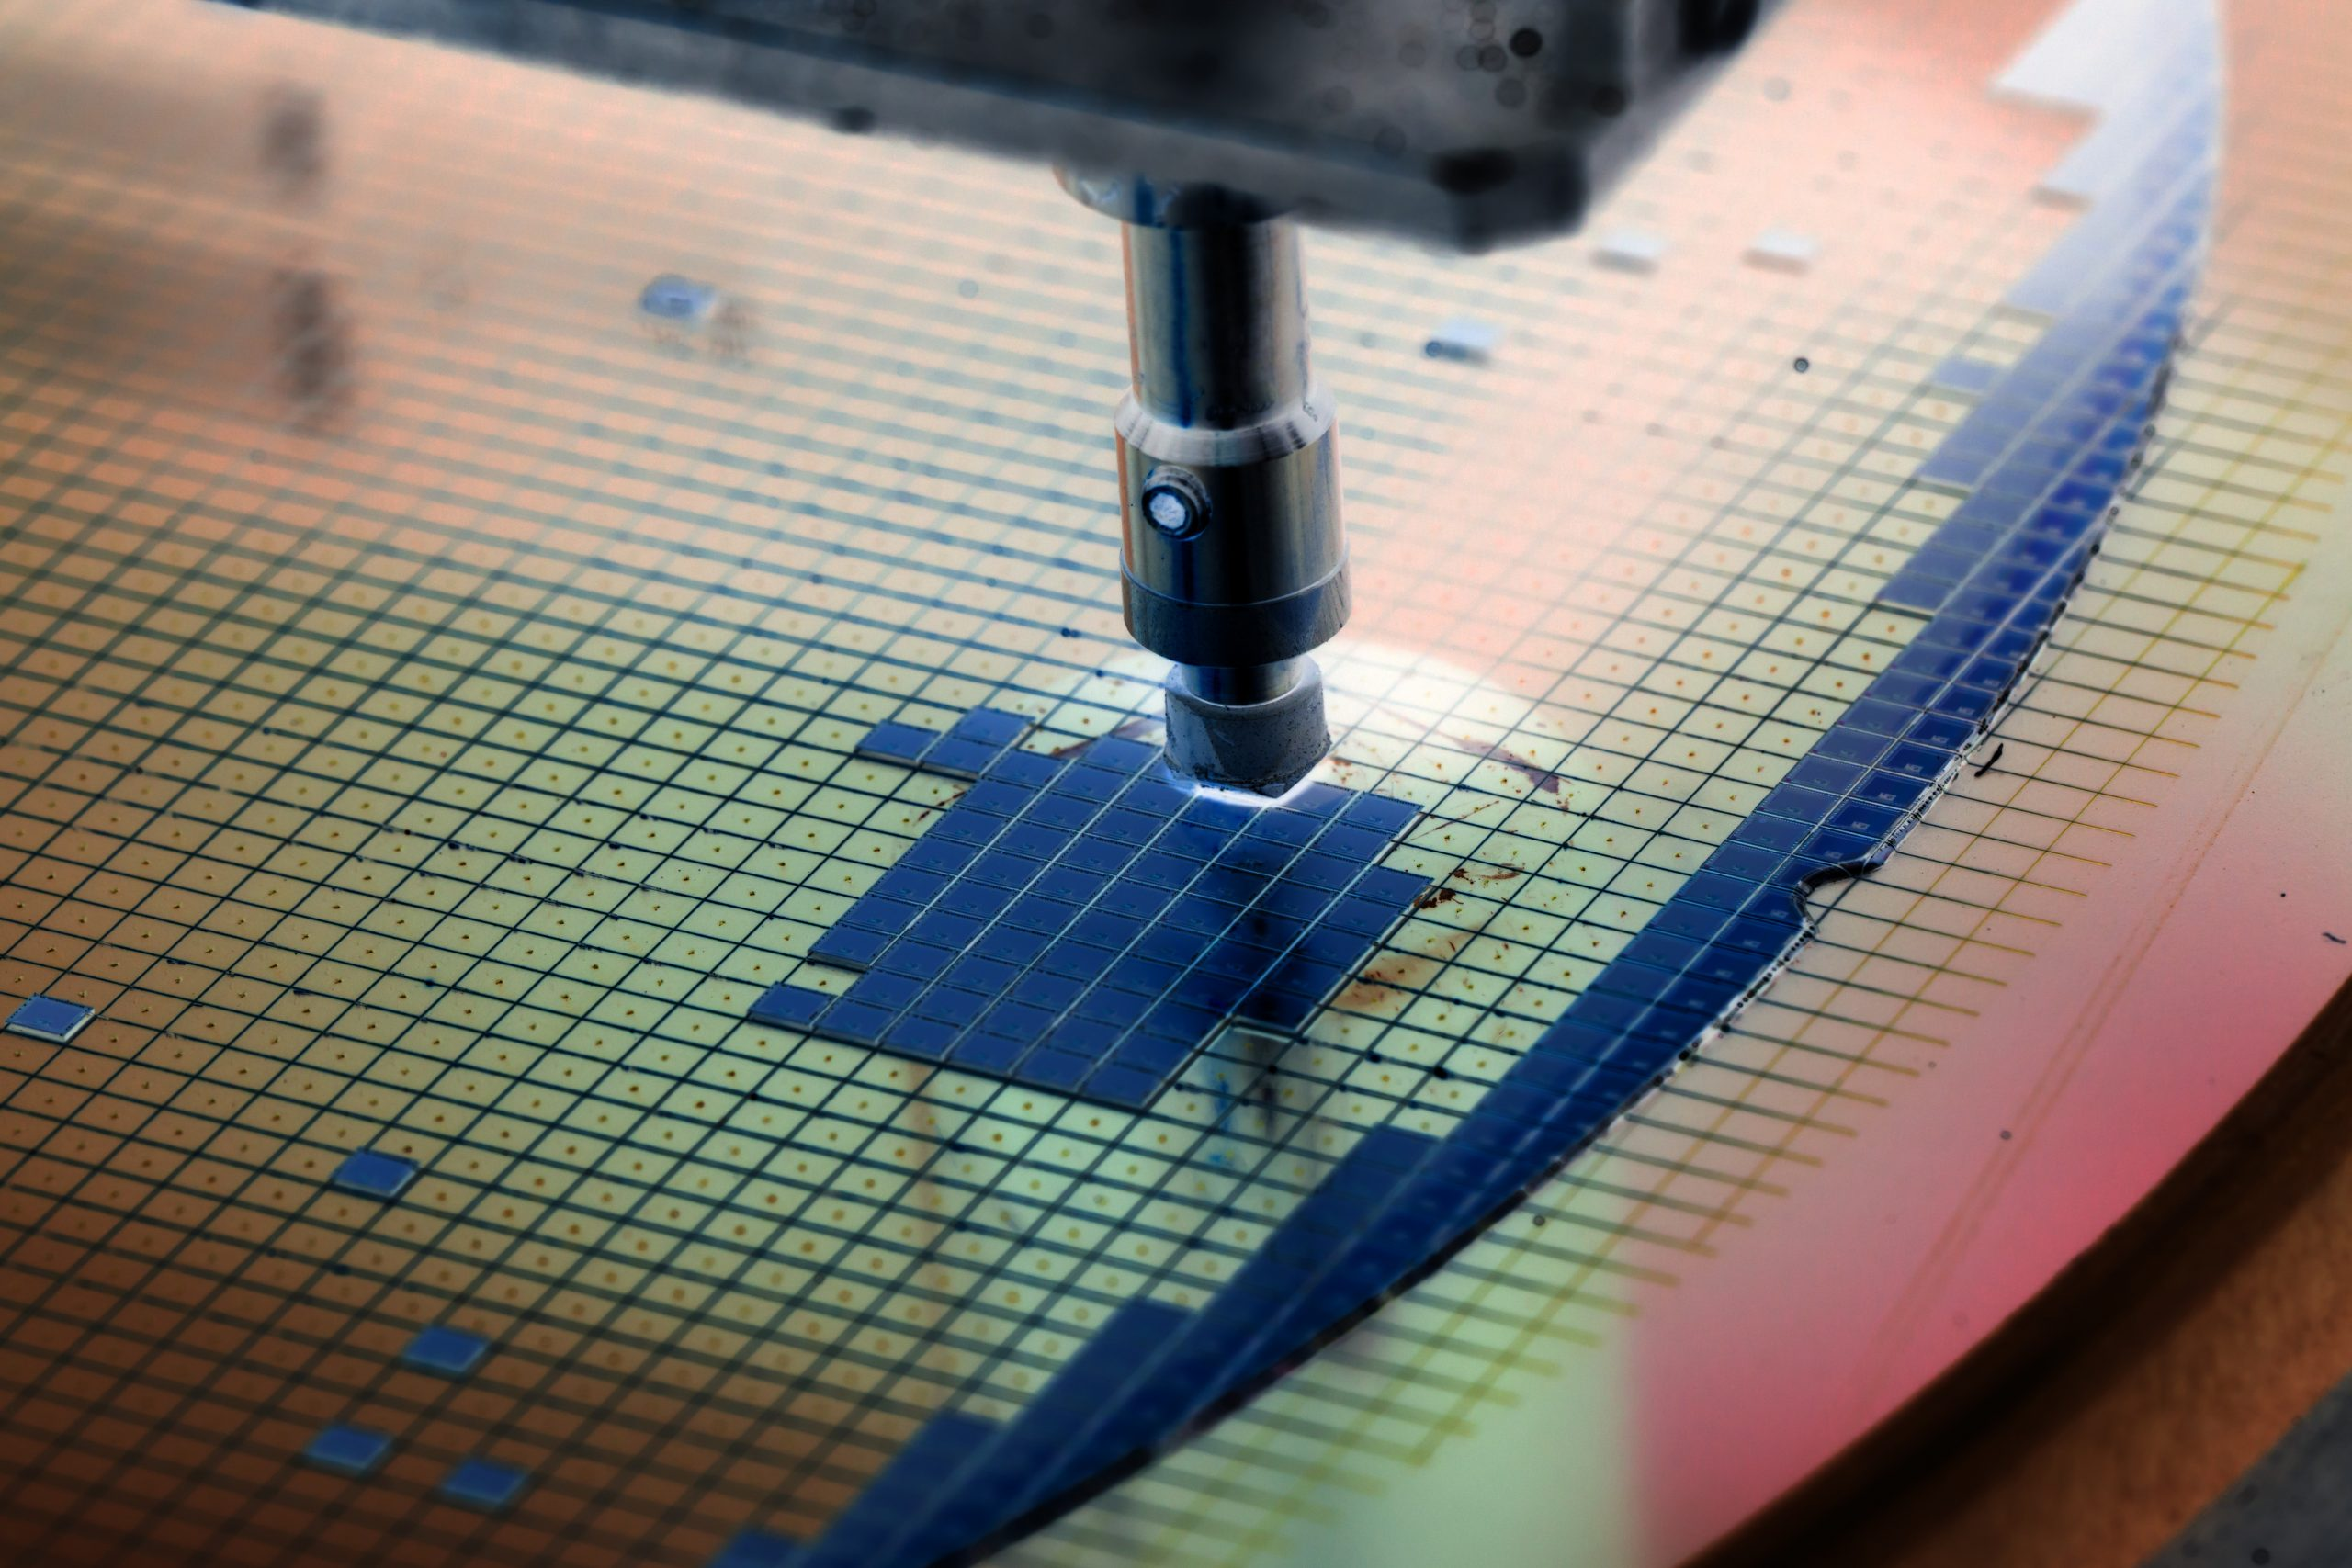 Silicon,Wafer,In,Die,Attach,Machine,In,Semiconductor,Manufacturing